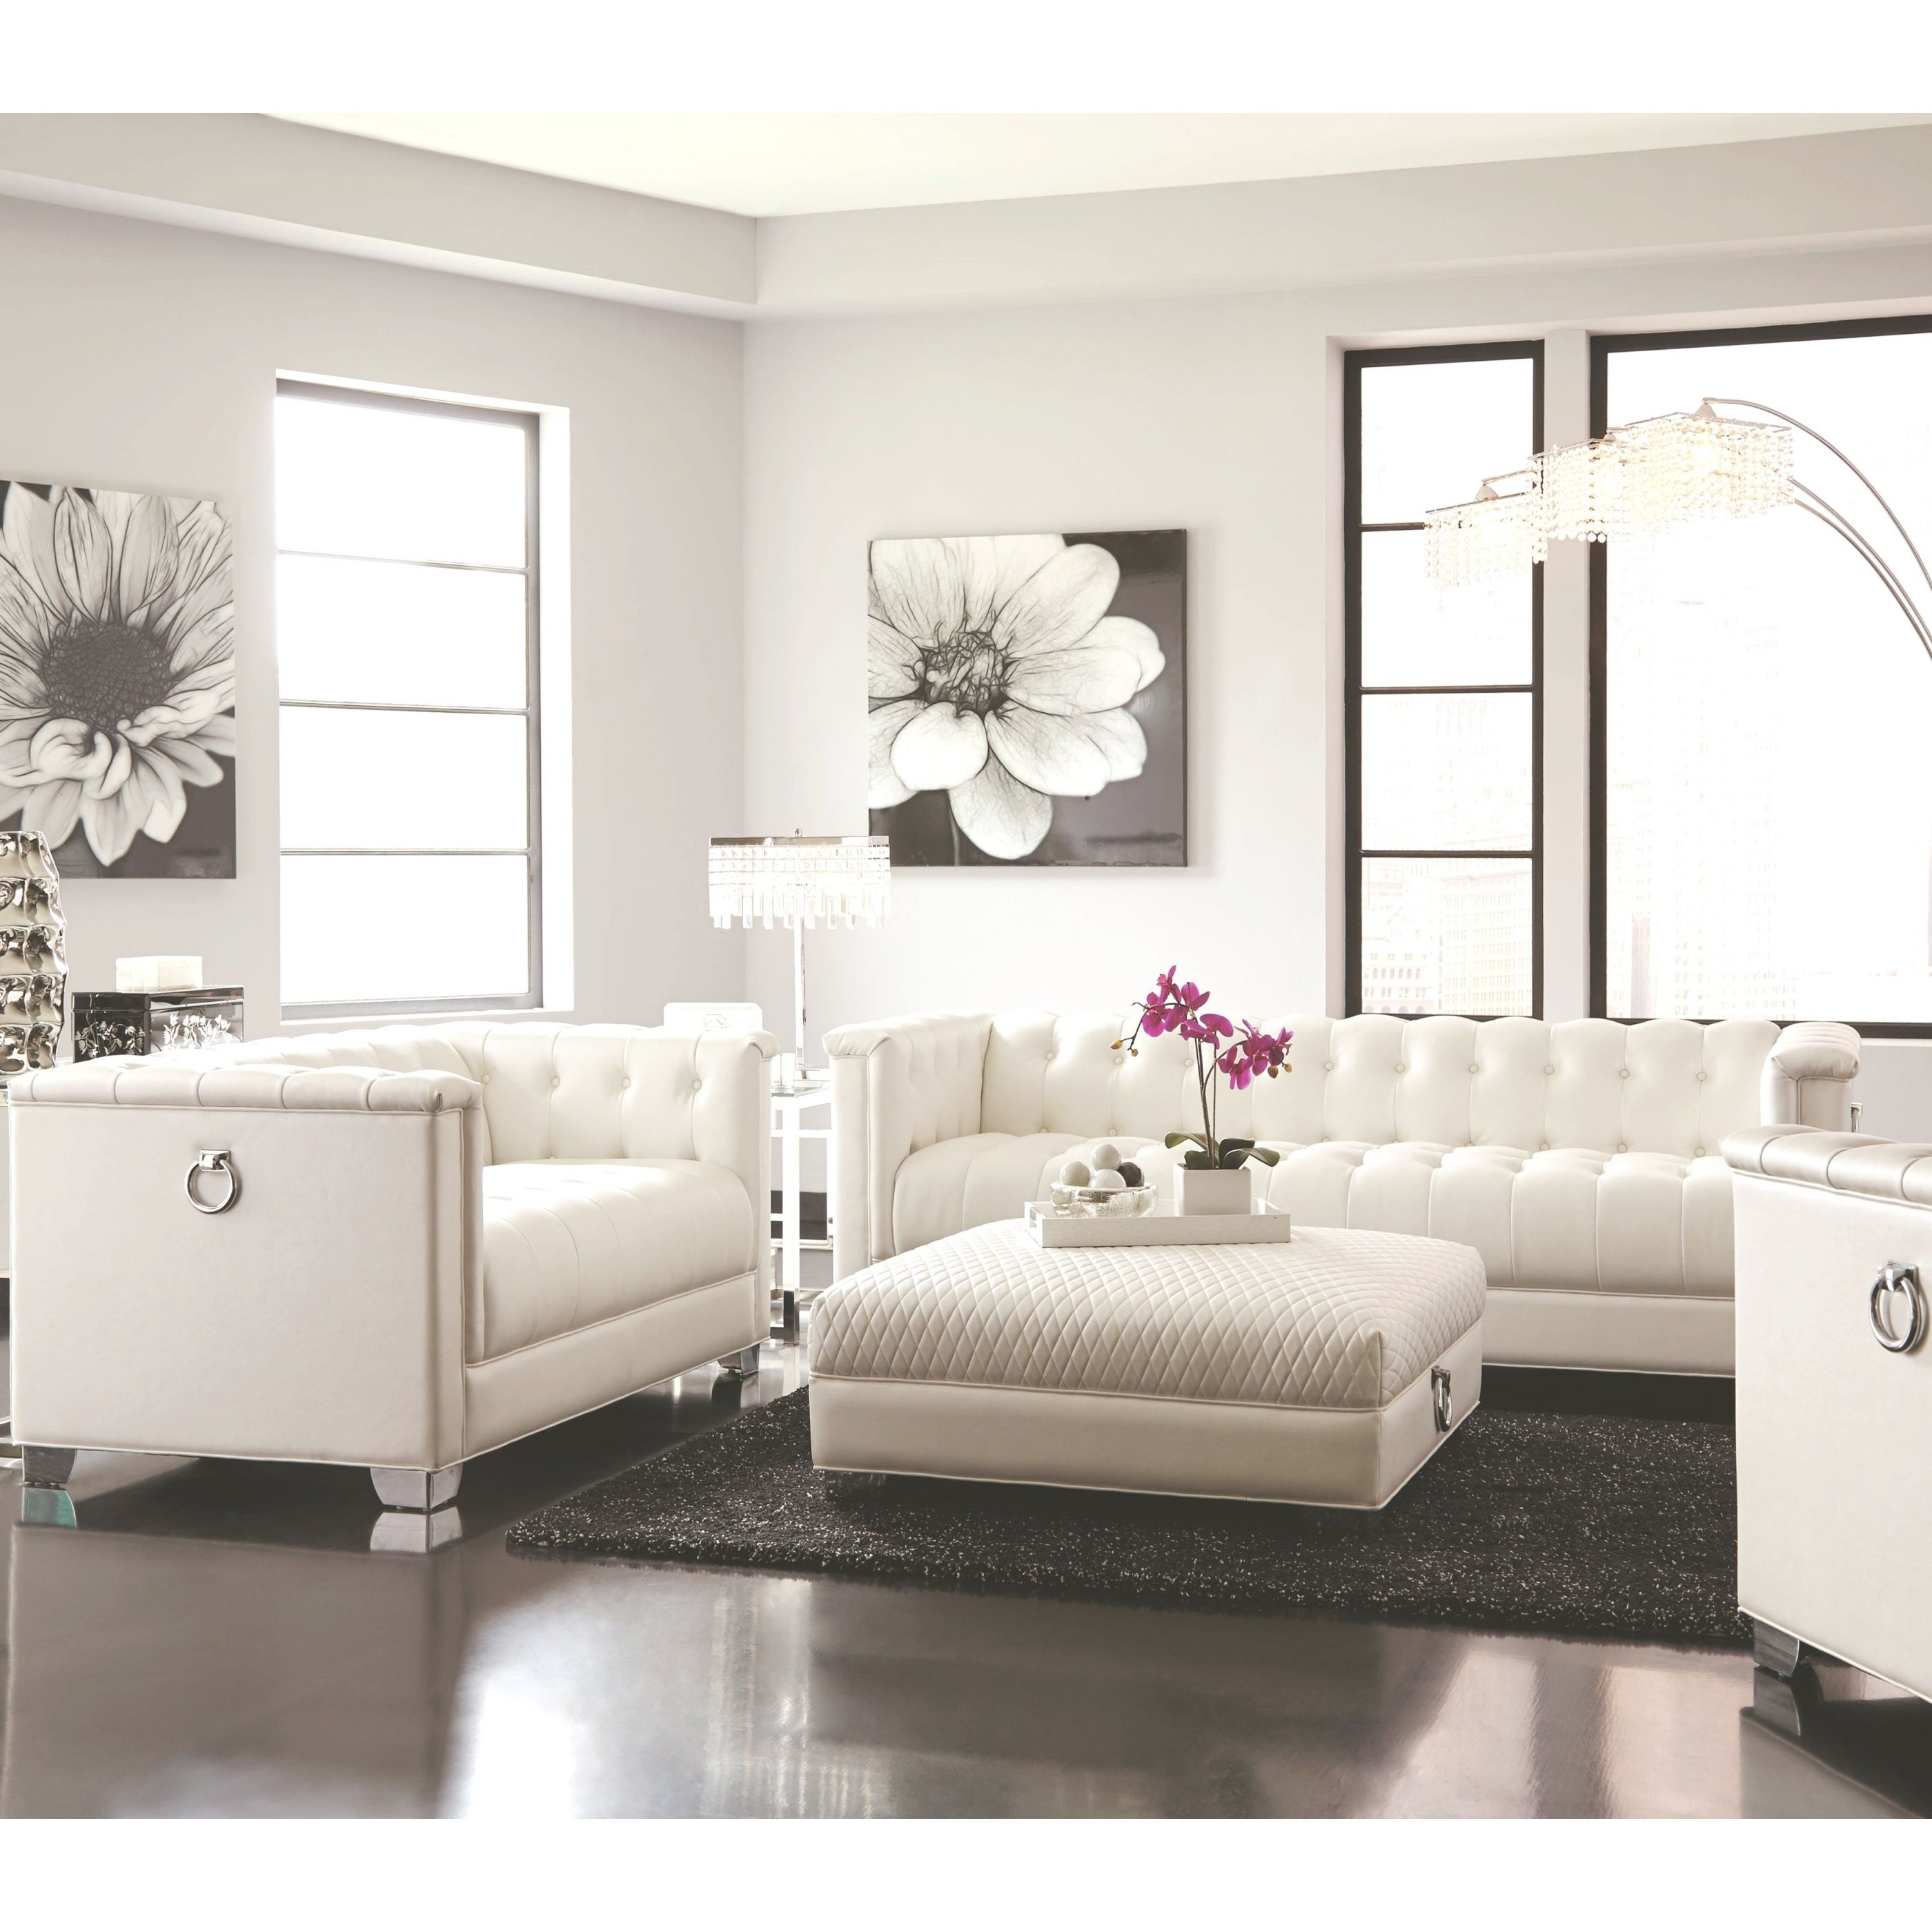 Classic Mid-Century Button Tufted Design Living Room Sofa Collection With Chrome Doorknocker Handles regarding Living Room Furnitures